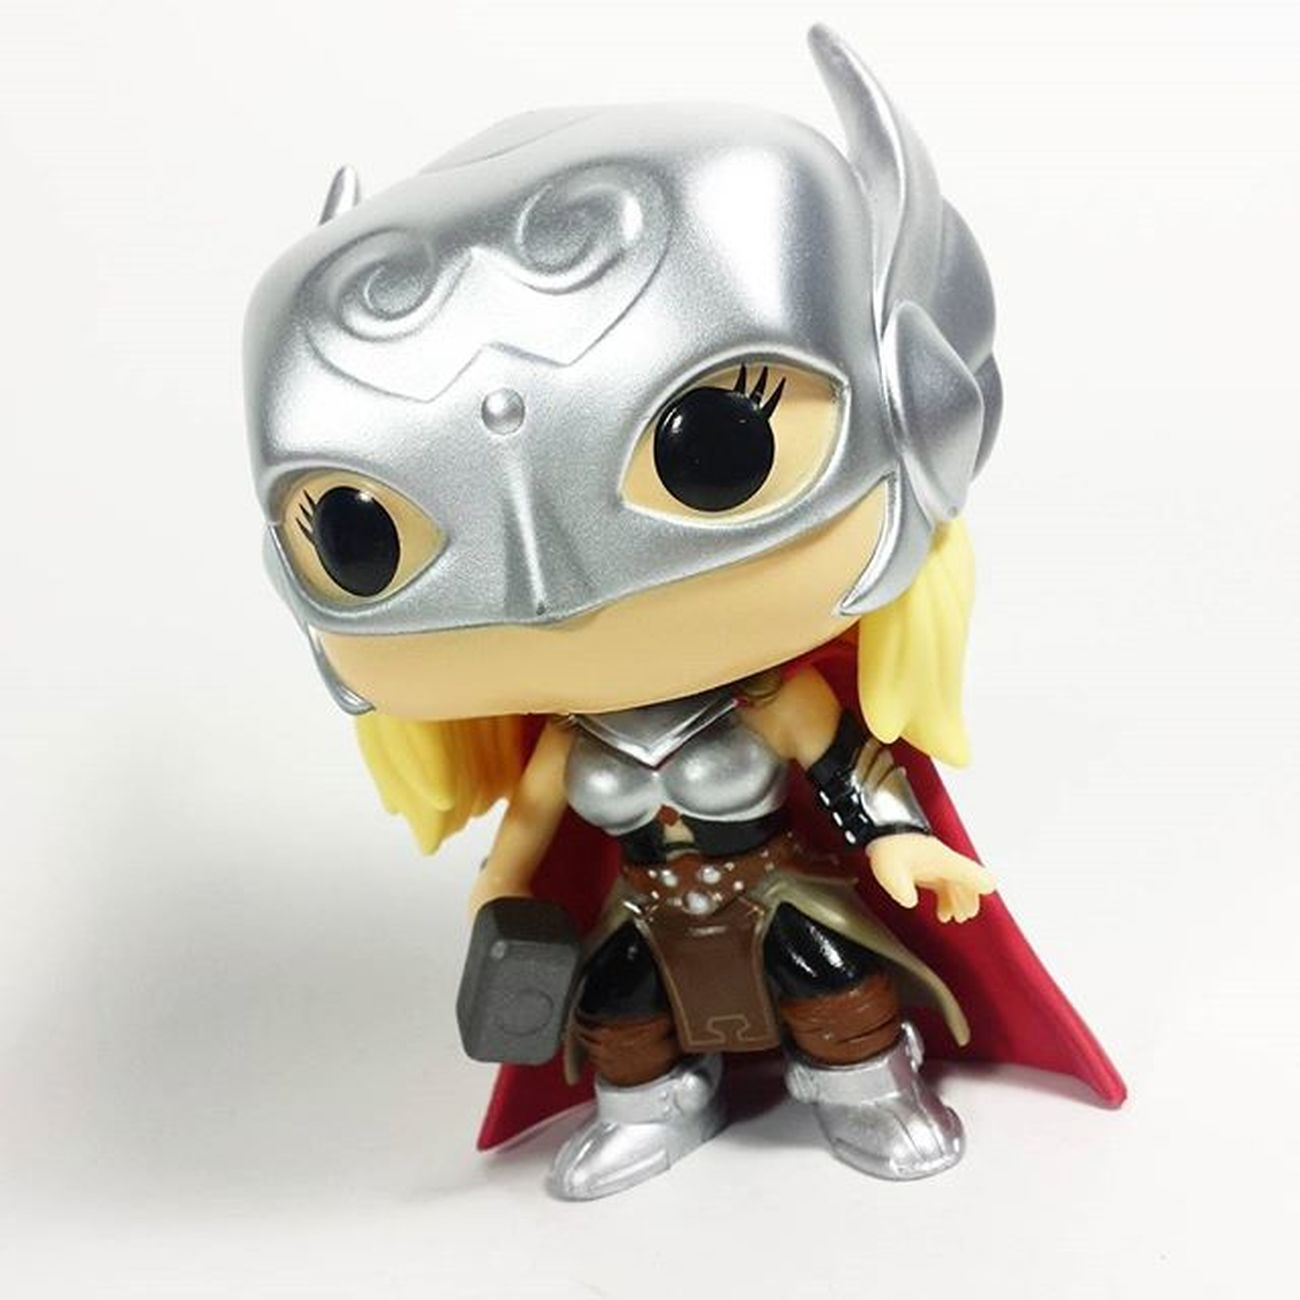 Thor  Goddessofthunder Janefoster Marvel Marvelcomics Comics Secretwars Collectorcorps Marvelcollectorcorps Funko Funkofan Funkopop Funkogram Toys Toyphotography Toypizza Toysarehellasick Toycollector Toycommunity Toycollection Disney Avengers